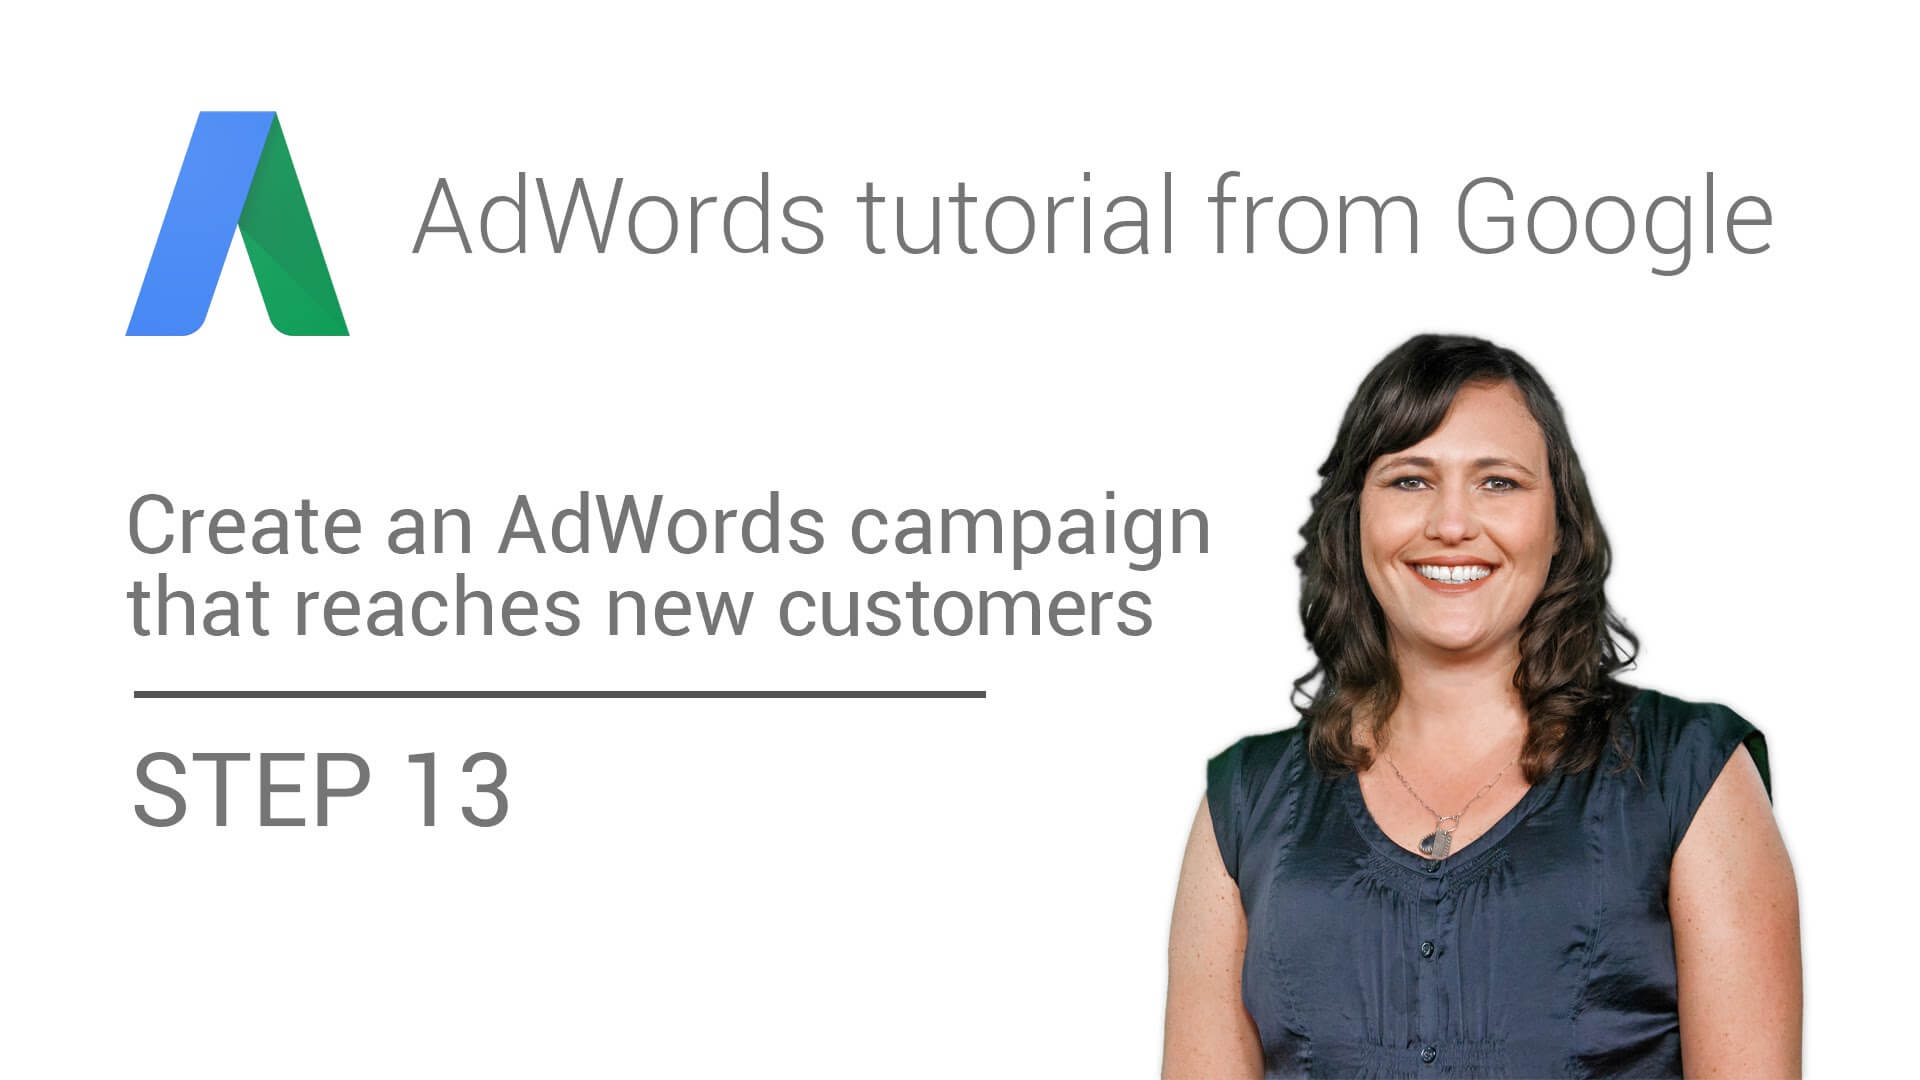 Step 13: How you're billed – AdWords tutorial from Google